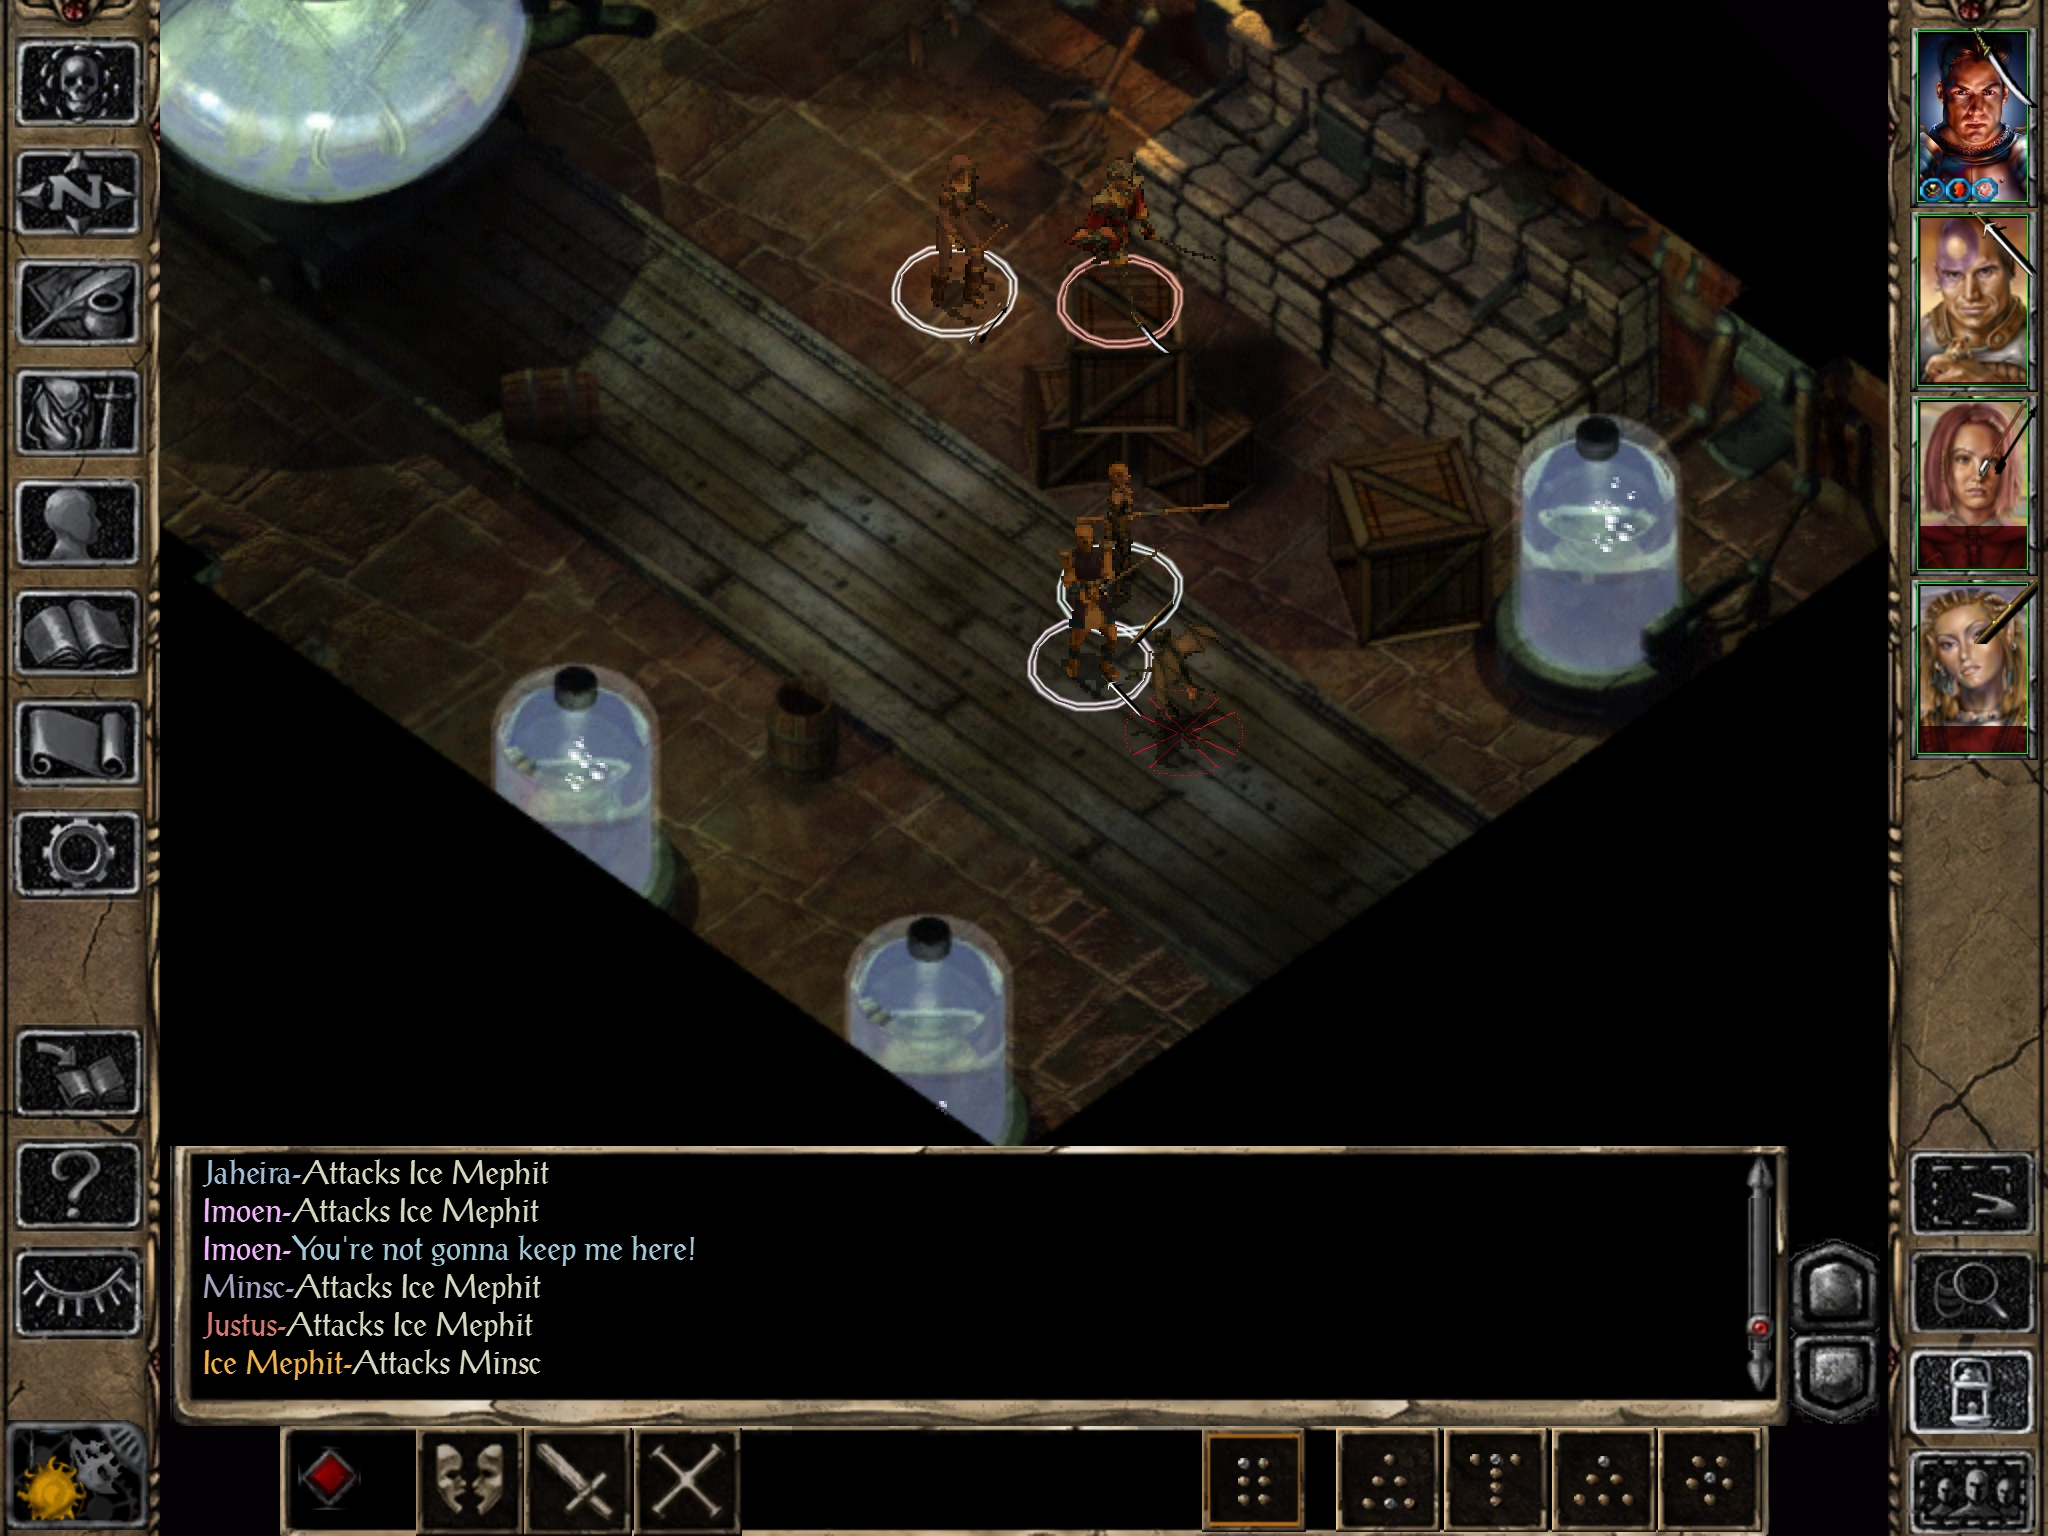 Baldur's Gate II: Enhanced Edition is half price for the next few days